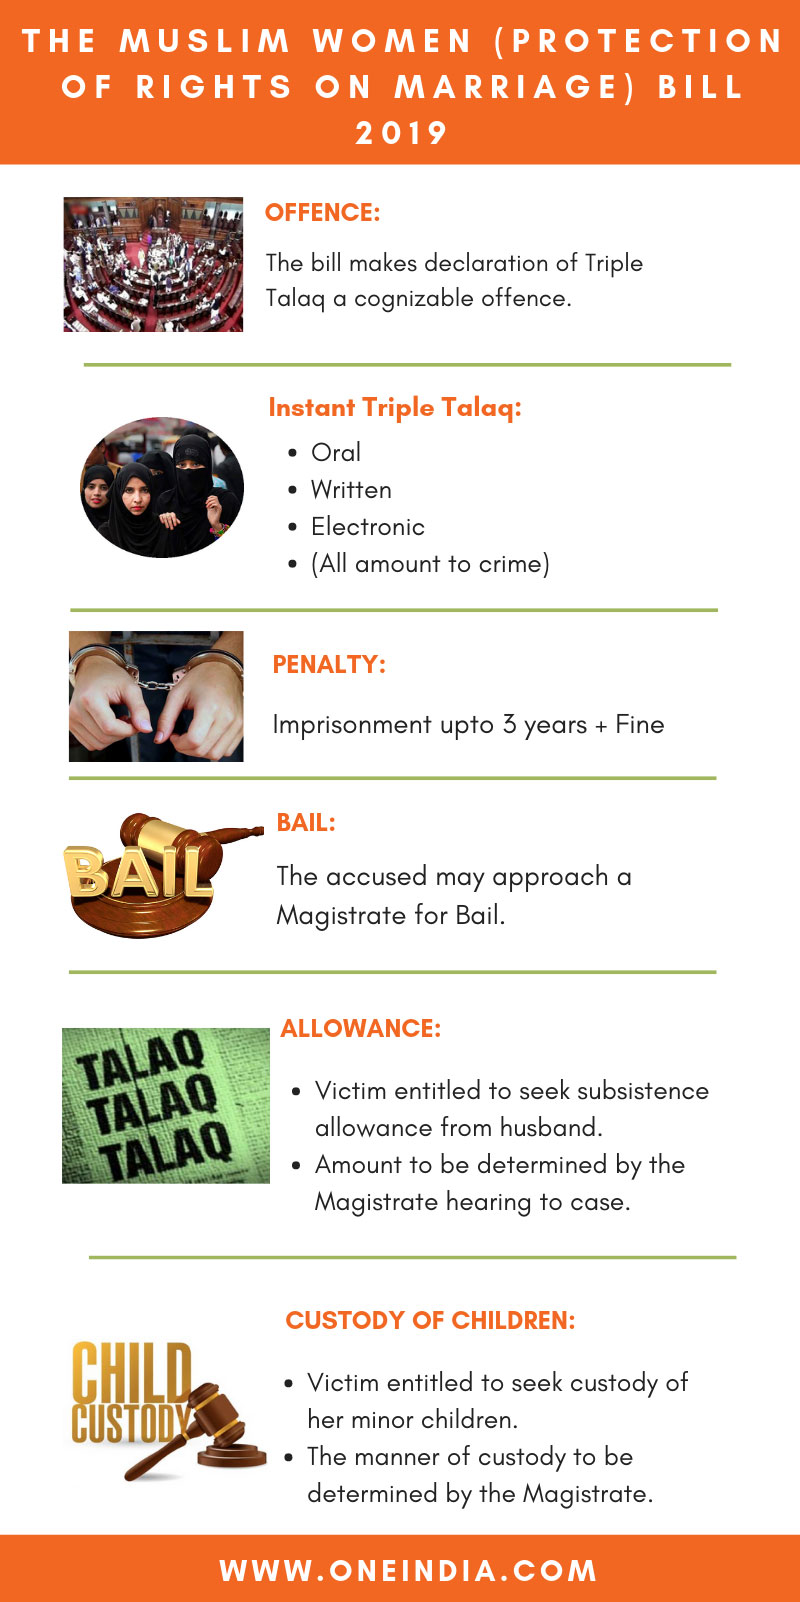 Explained: Triple Talaq Bill in nutshell; All you need to know about Penalty, Bail, Allowance